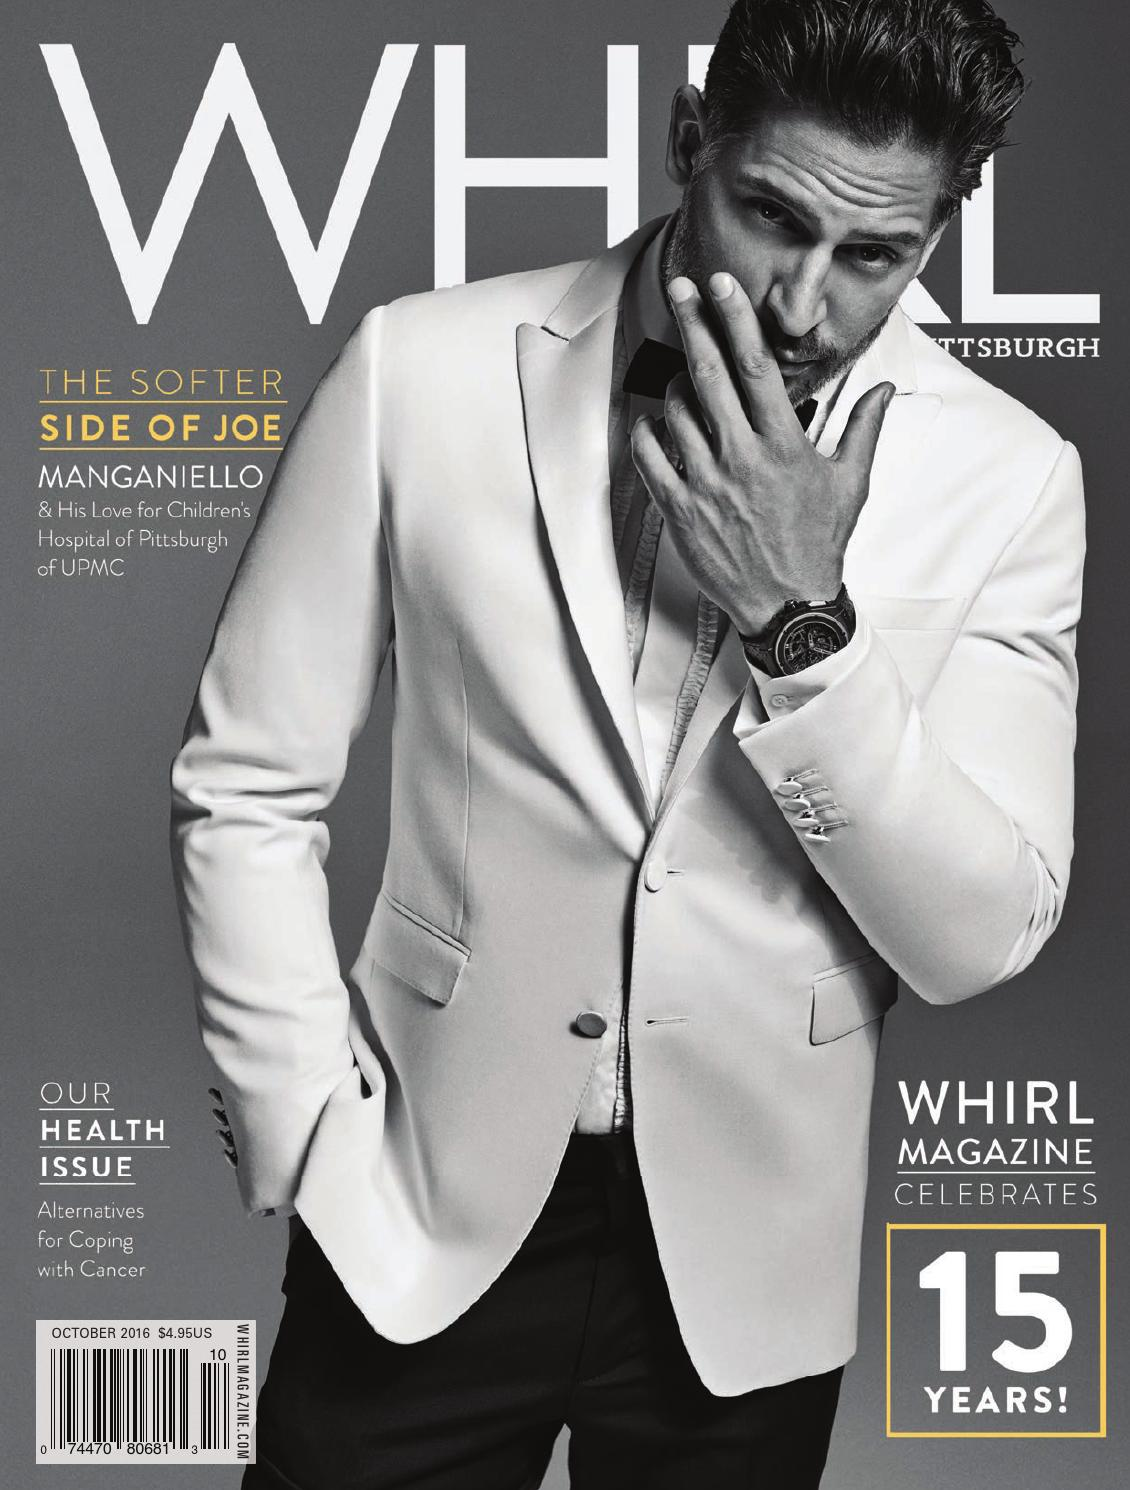 WHIRL Magazine: October 2016 by WHIRL Publishing - issuu